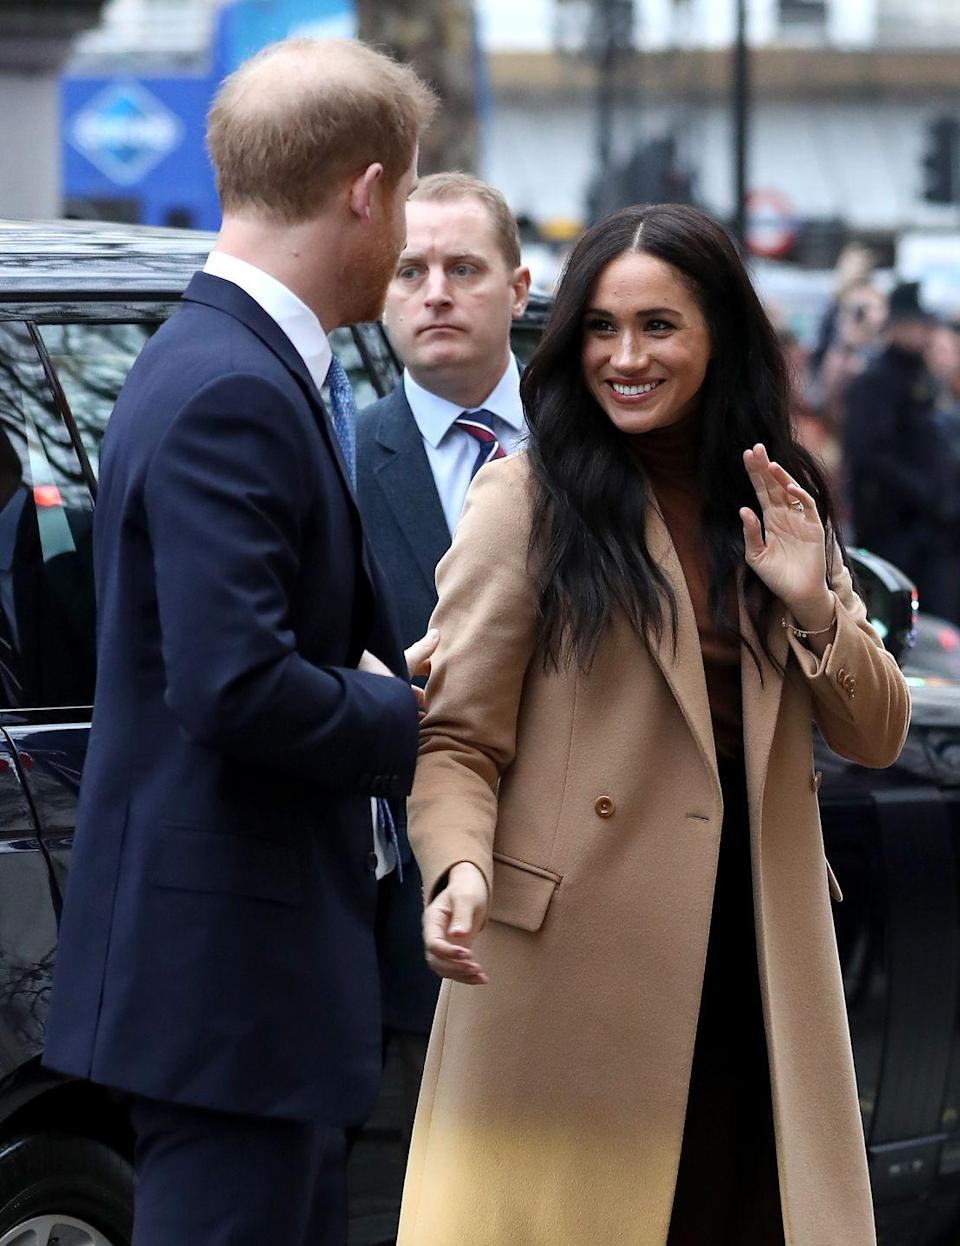 <p>Meghan was spotted wearing this camel coat alongside her boo (also known as the Duke of Sussex) while arriving at Canada House in London. Also, those waves! Please give us your secret, Megs. </p>